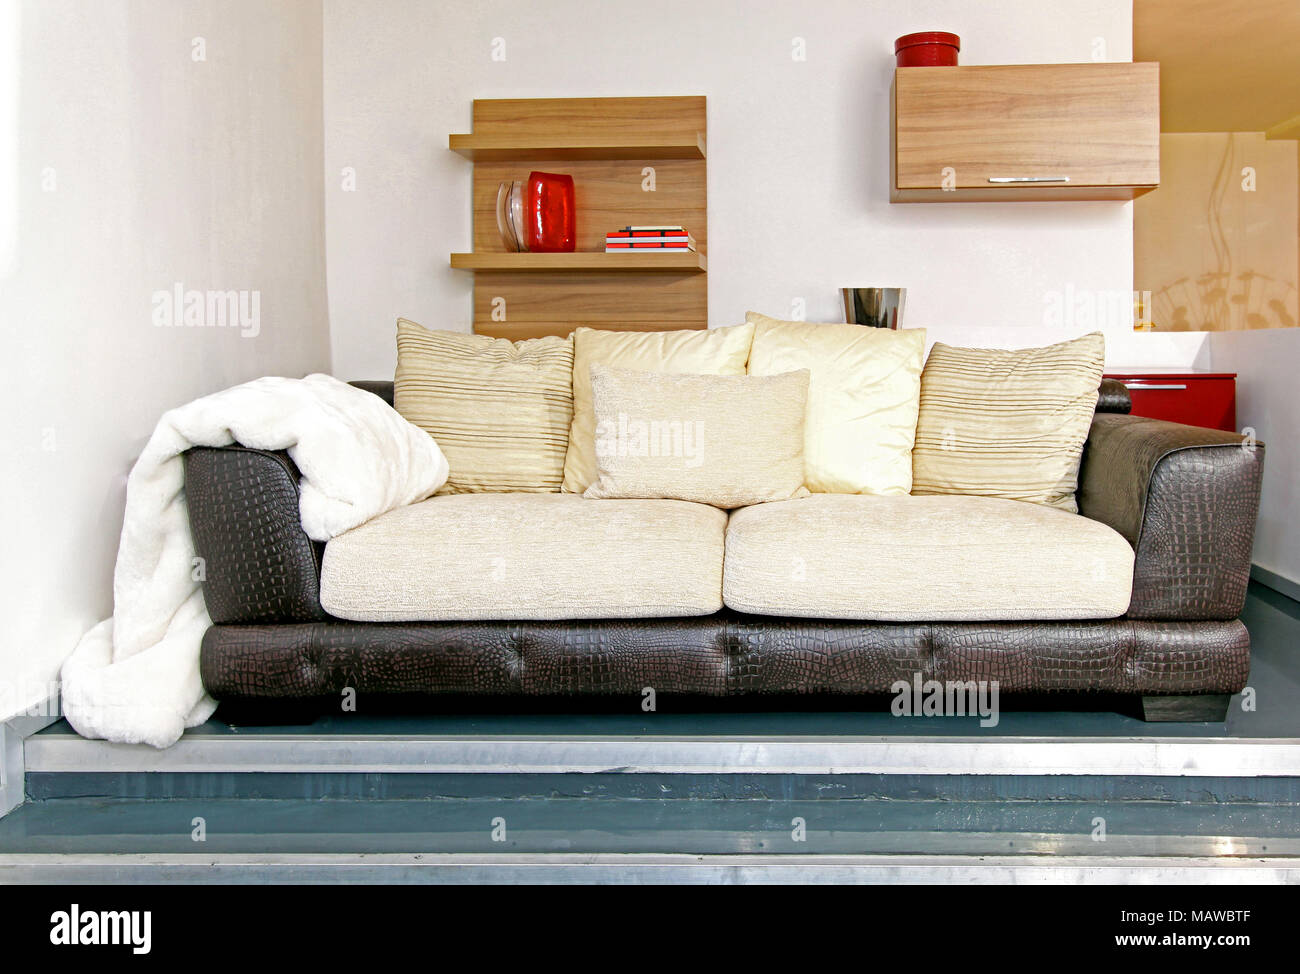 Retro Living Room Stock Photos & Retro Living Room Stock Images - Alamy